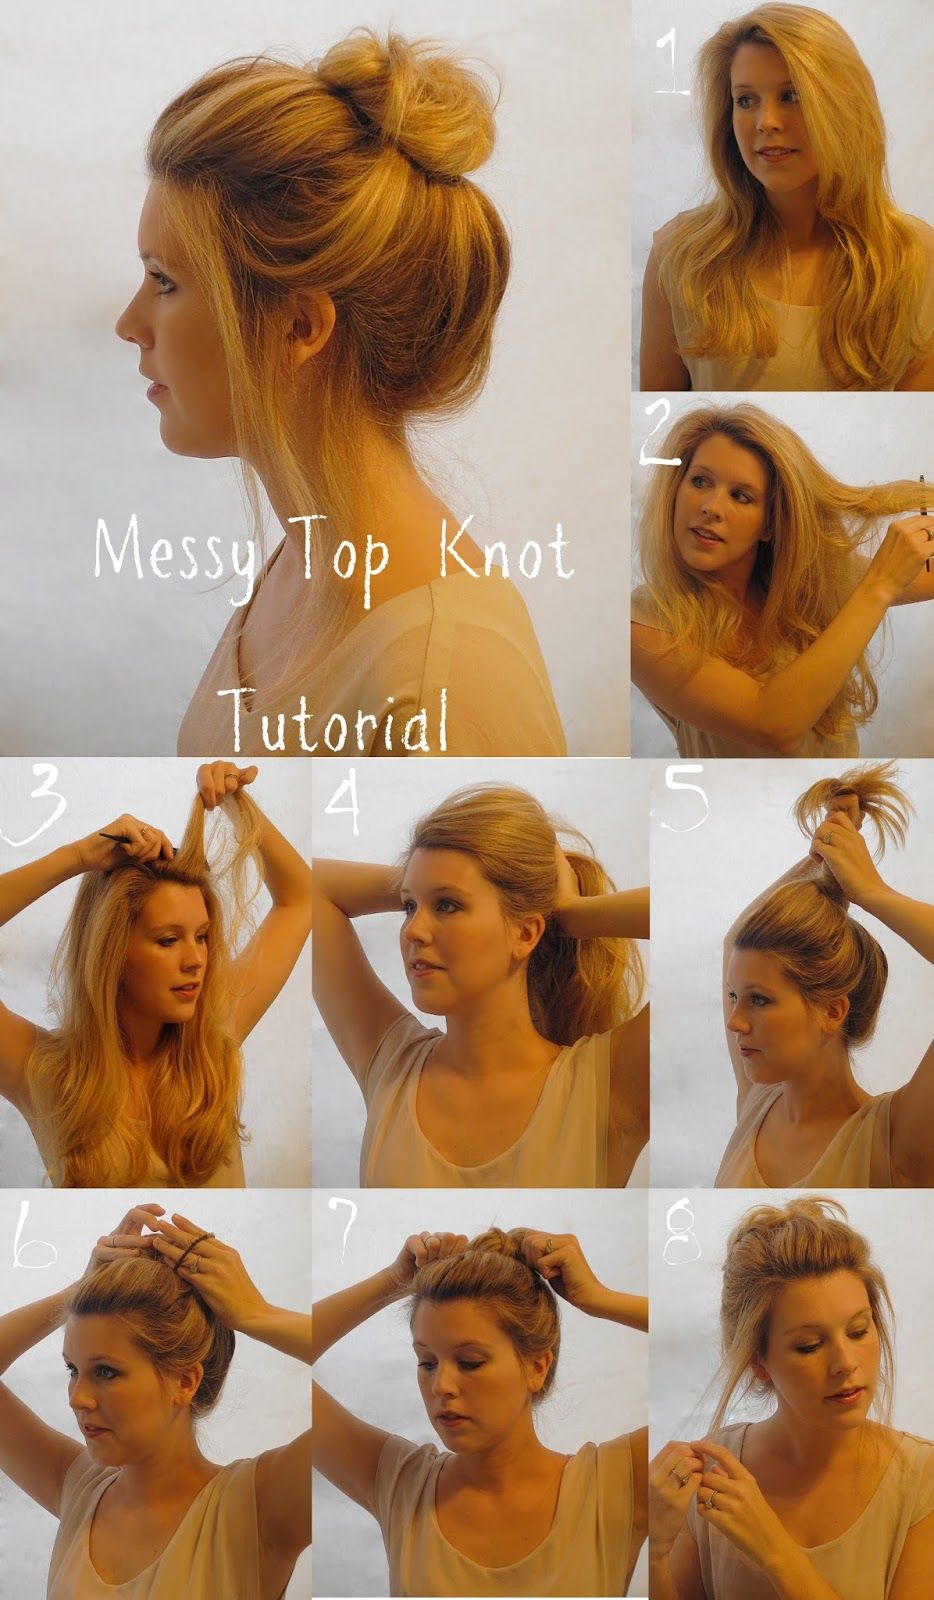 Messy Top Knot Hair Tutorial Pictures, Photos, And Images